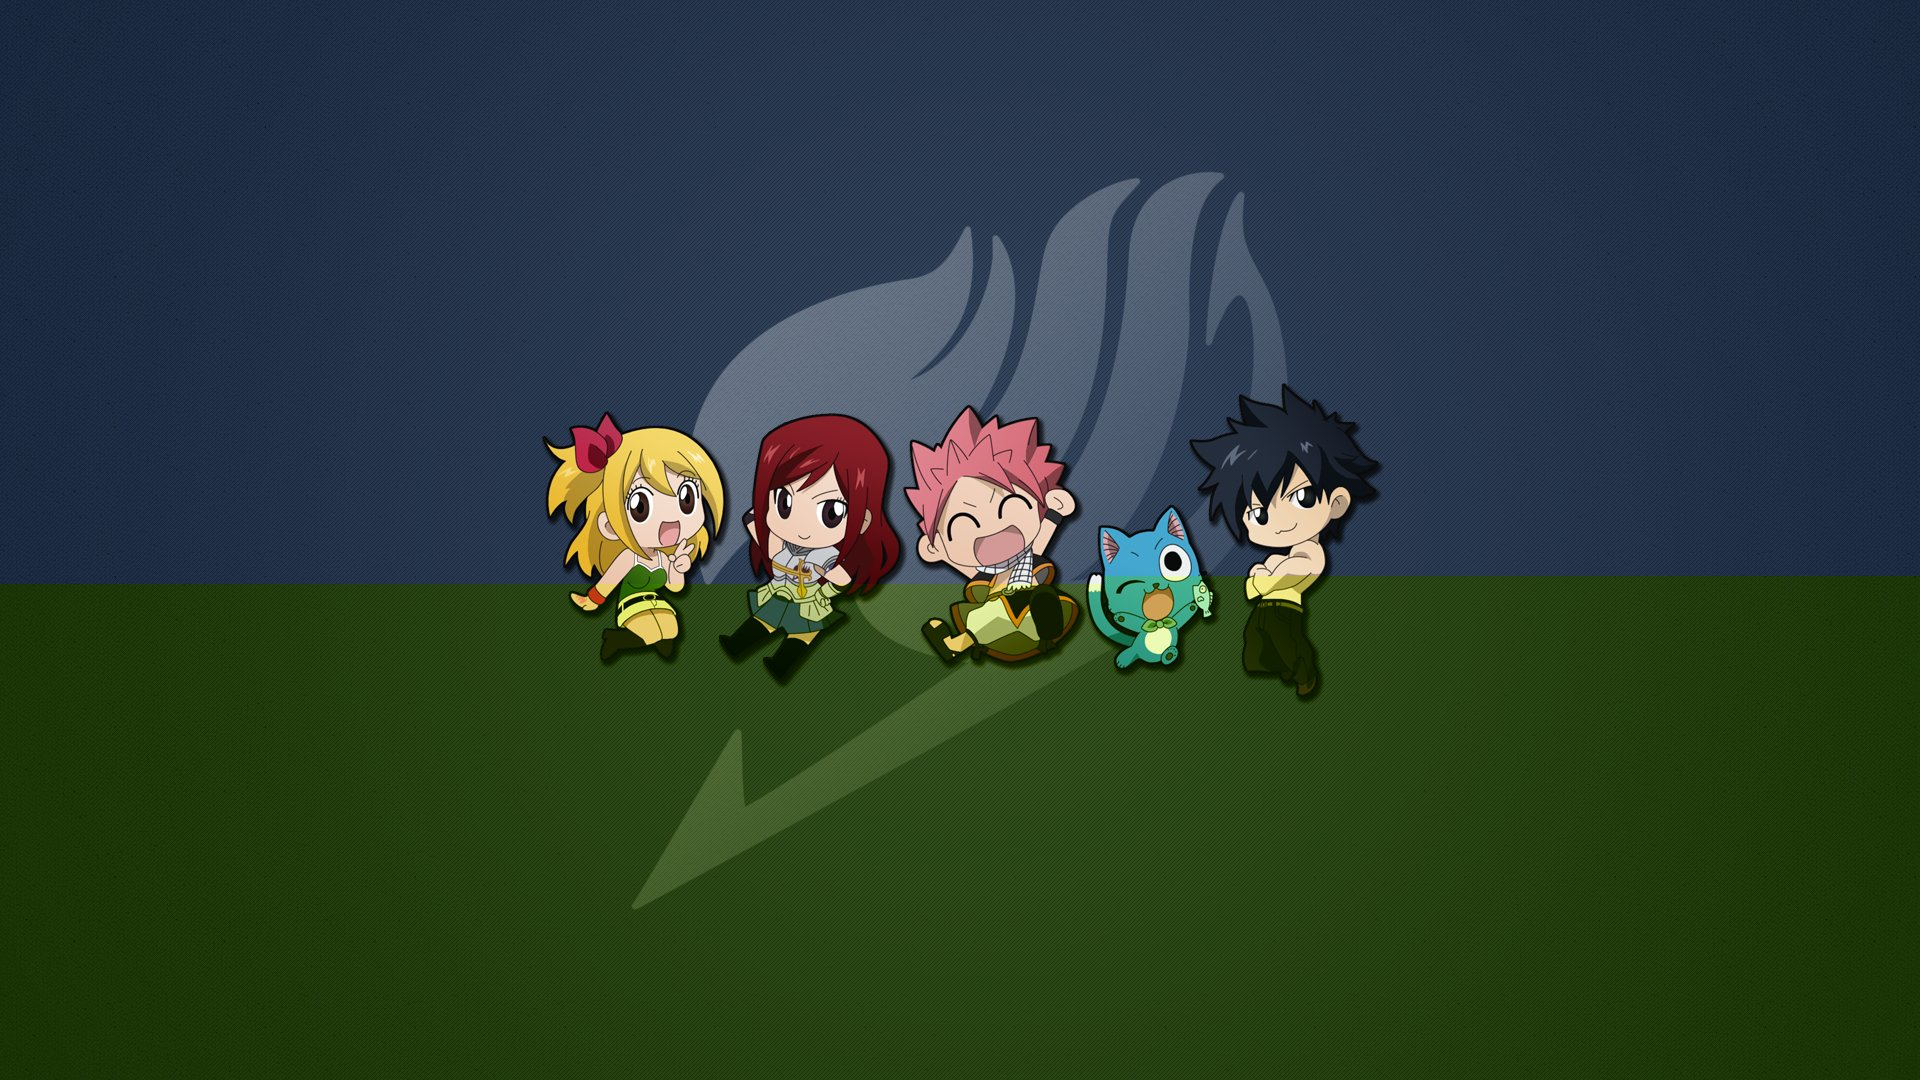 Fairy Tail Characters Wallpaper 1920x1080